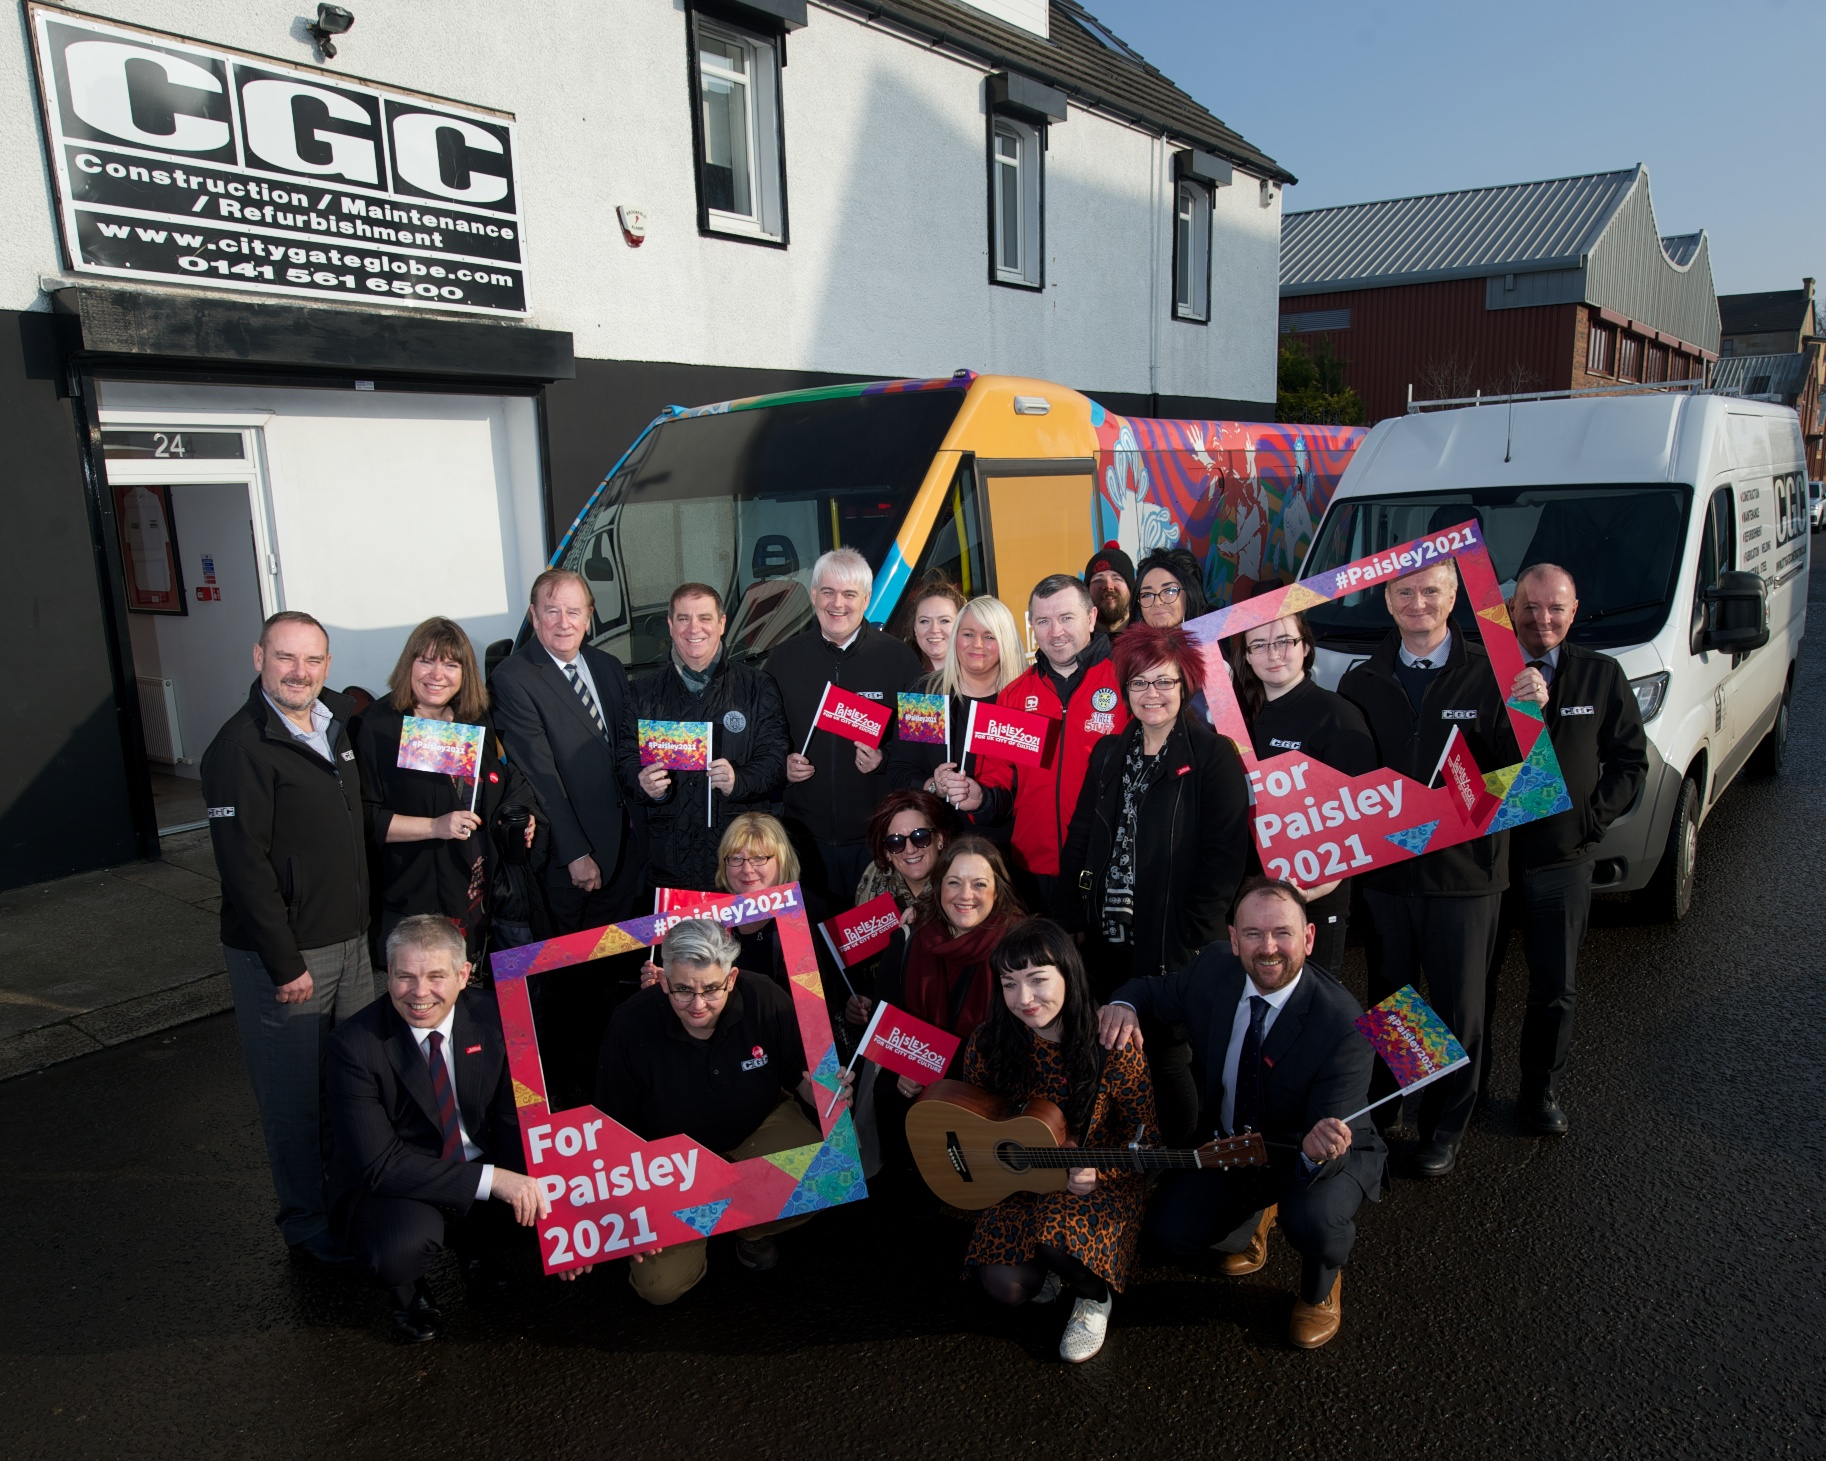 Local businesses show support for Paisley 2021 bid through Culture Bus tour